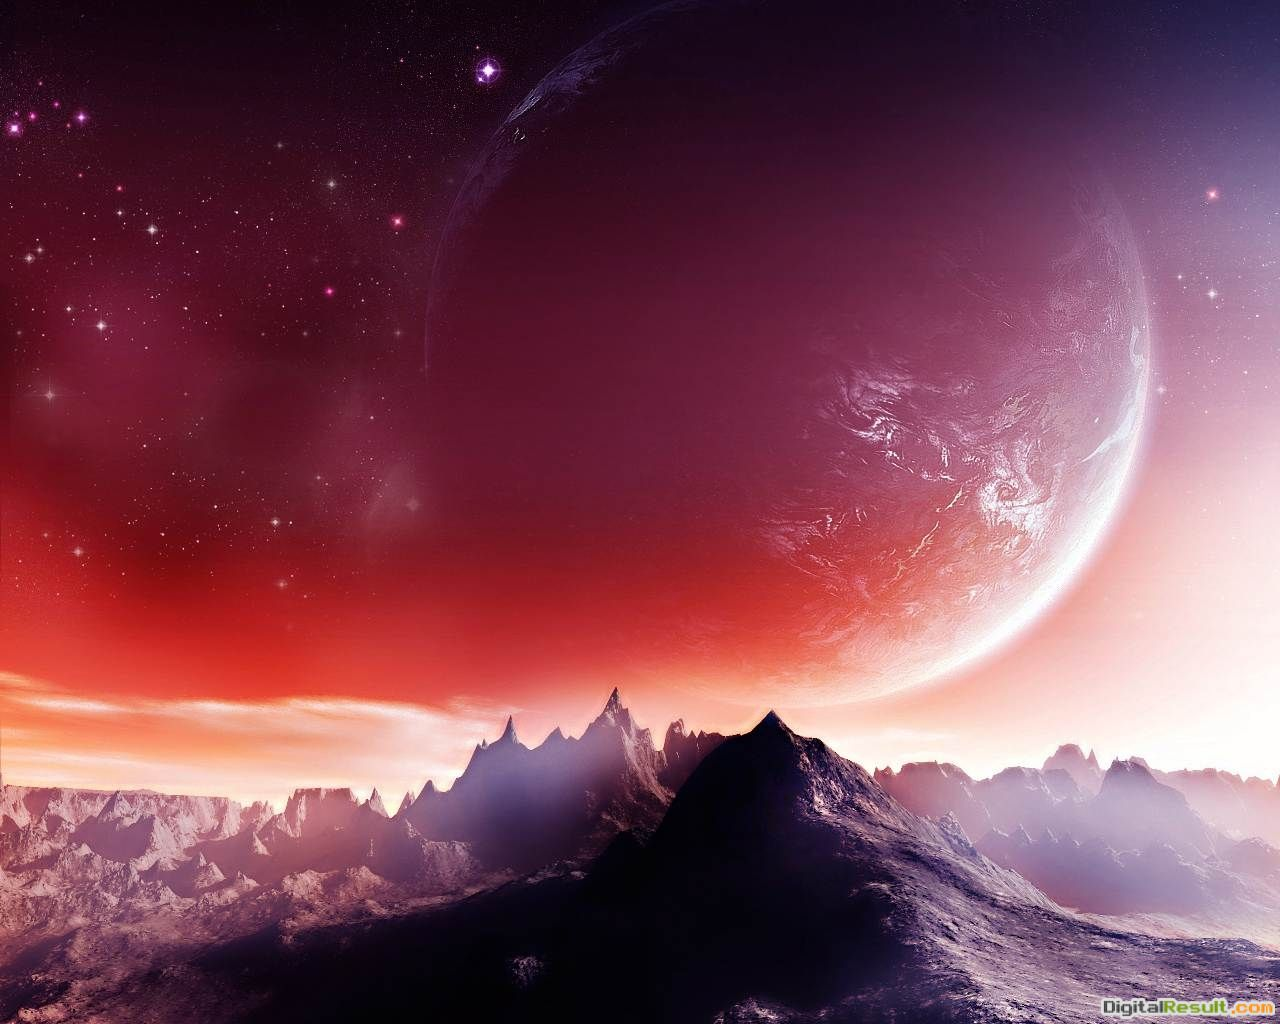 Wallpapers BackgroundsRed Planet Wallpaper Sky Beautiful Nature 686